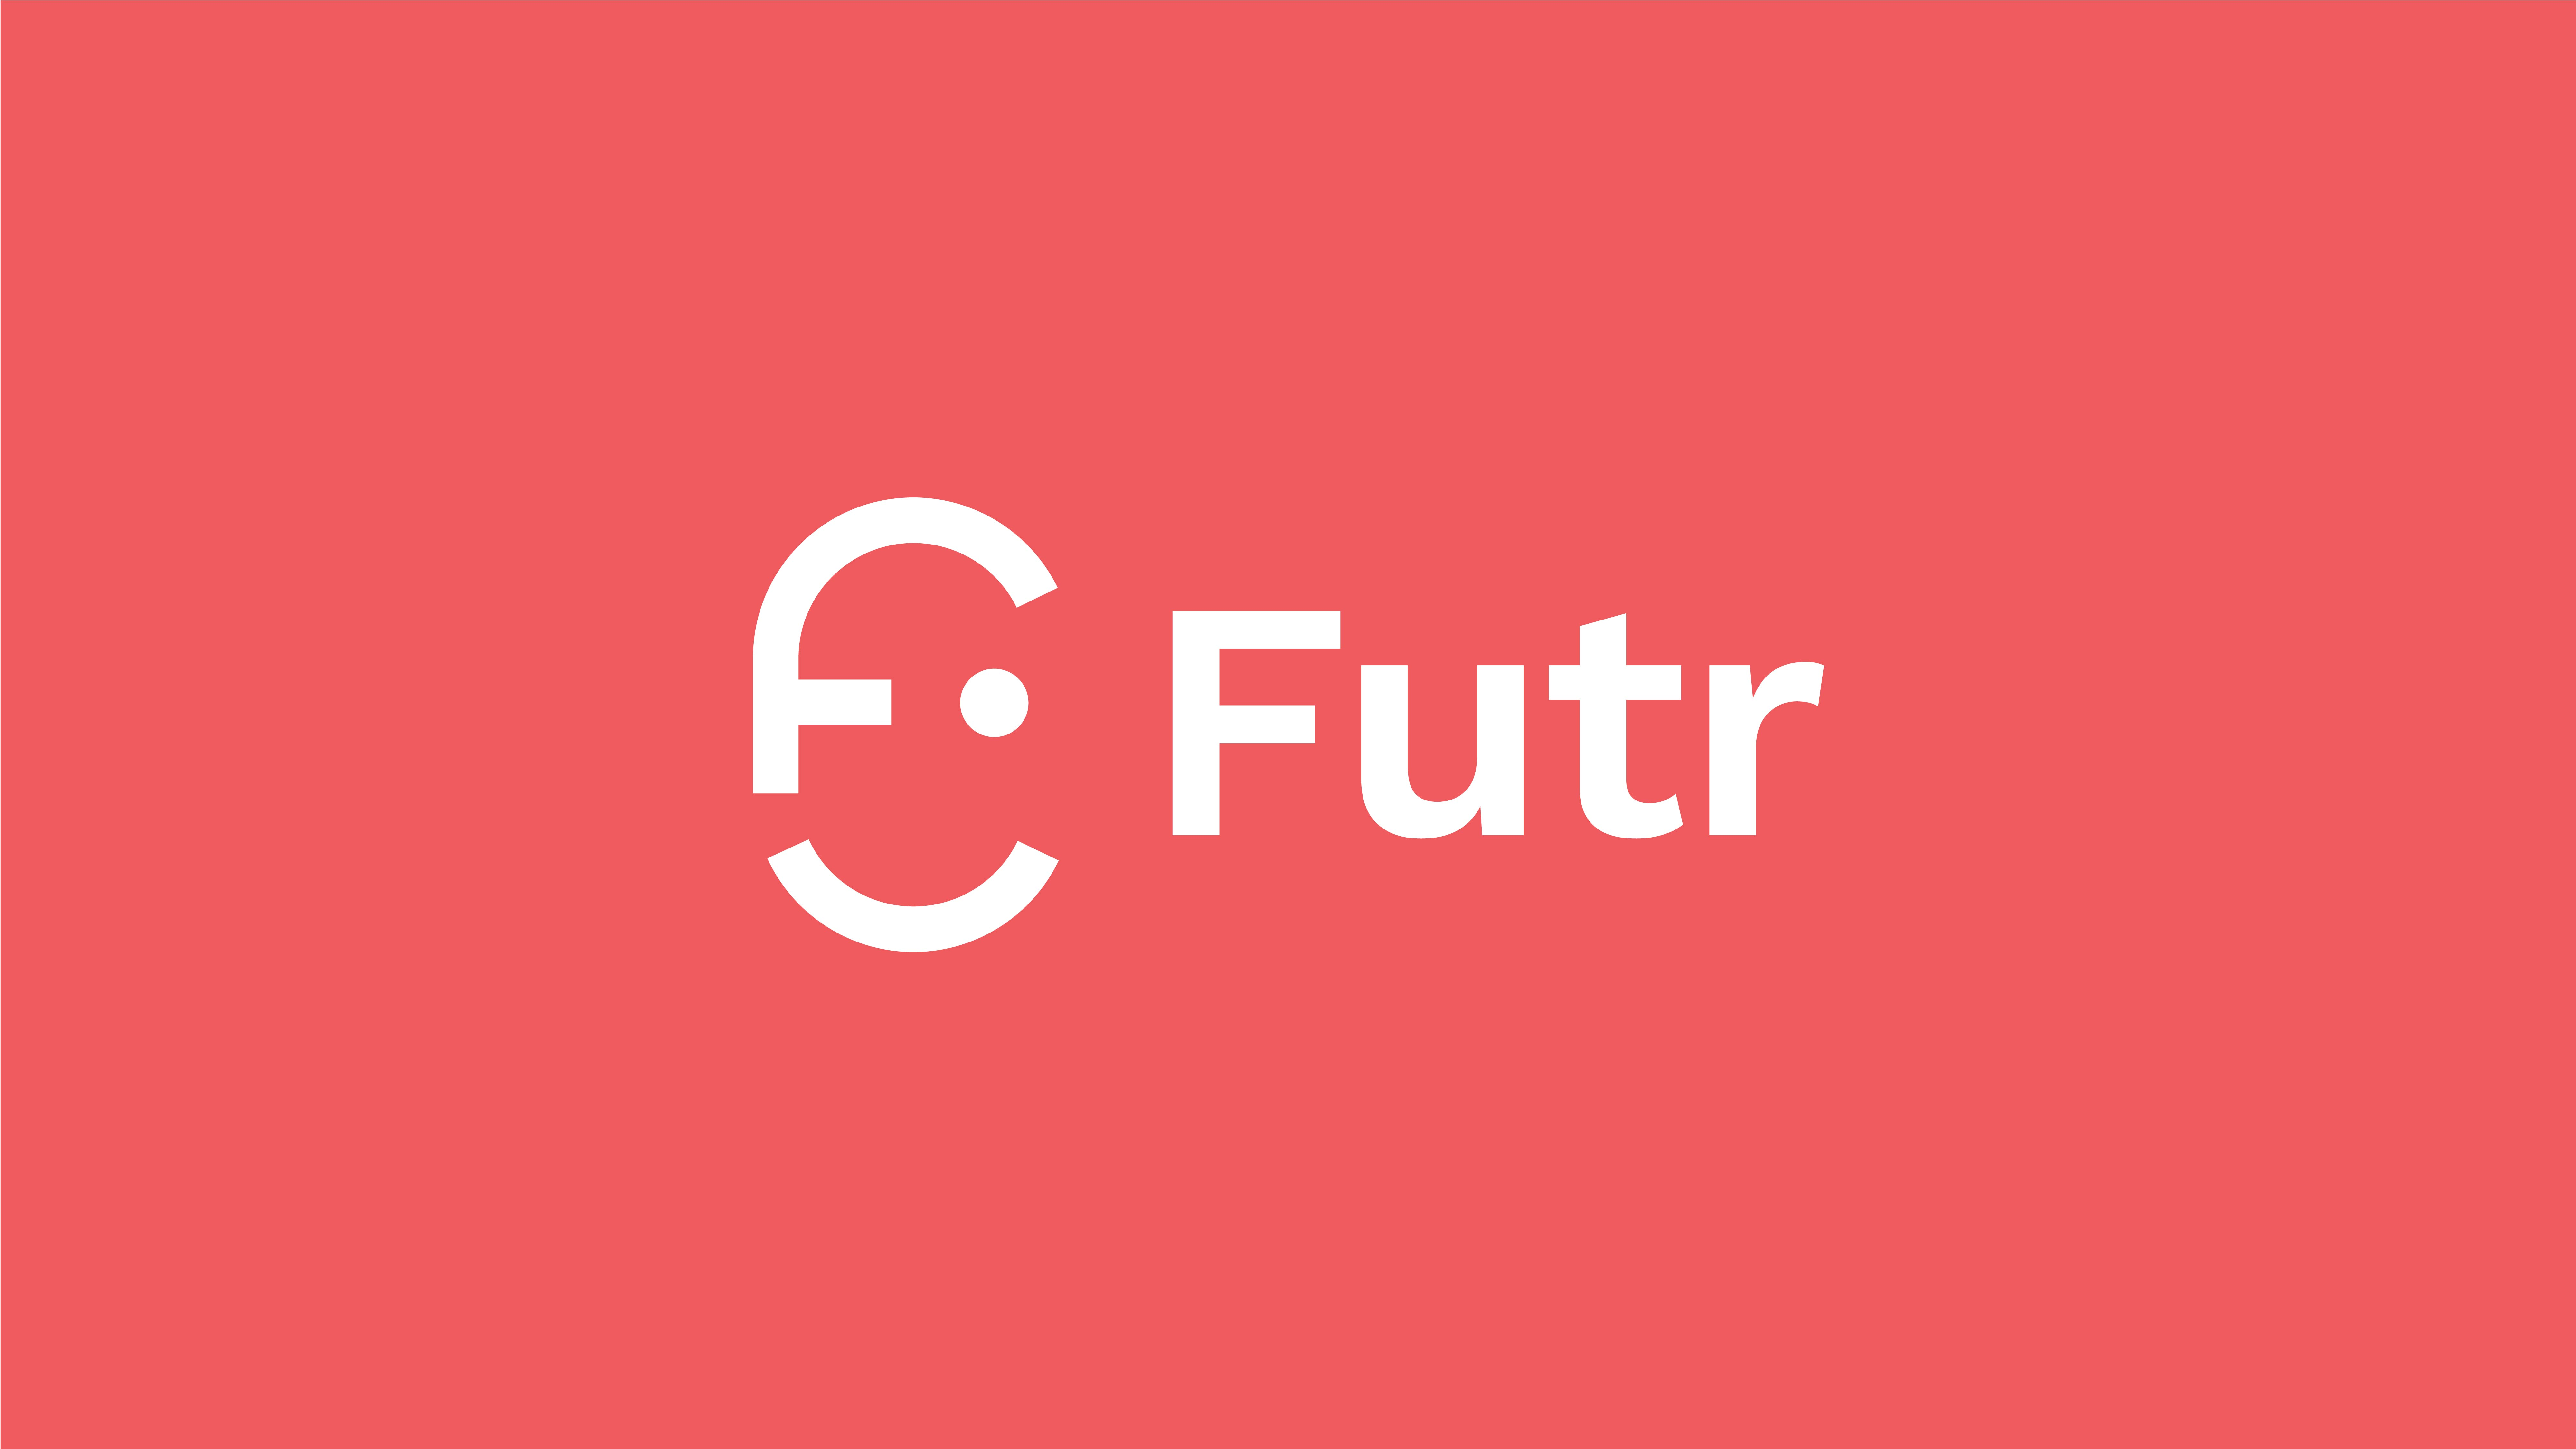 Artificial Intelligence Brand Futr Launches New Identity Designed by Lantern